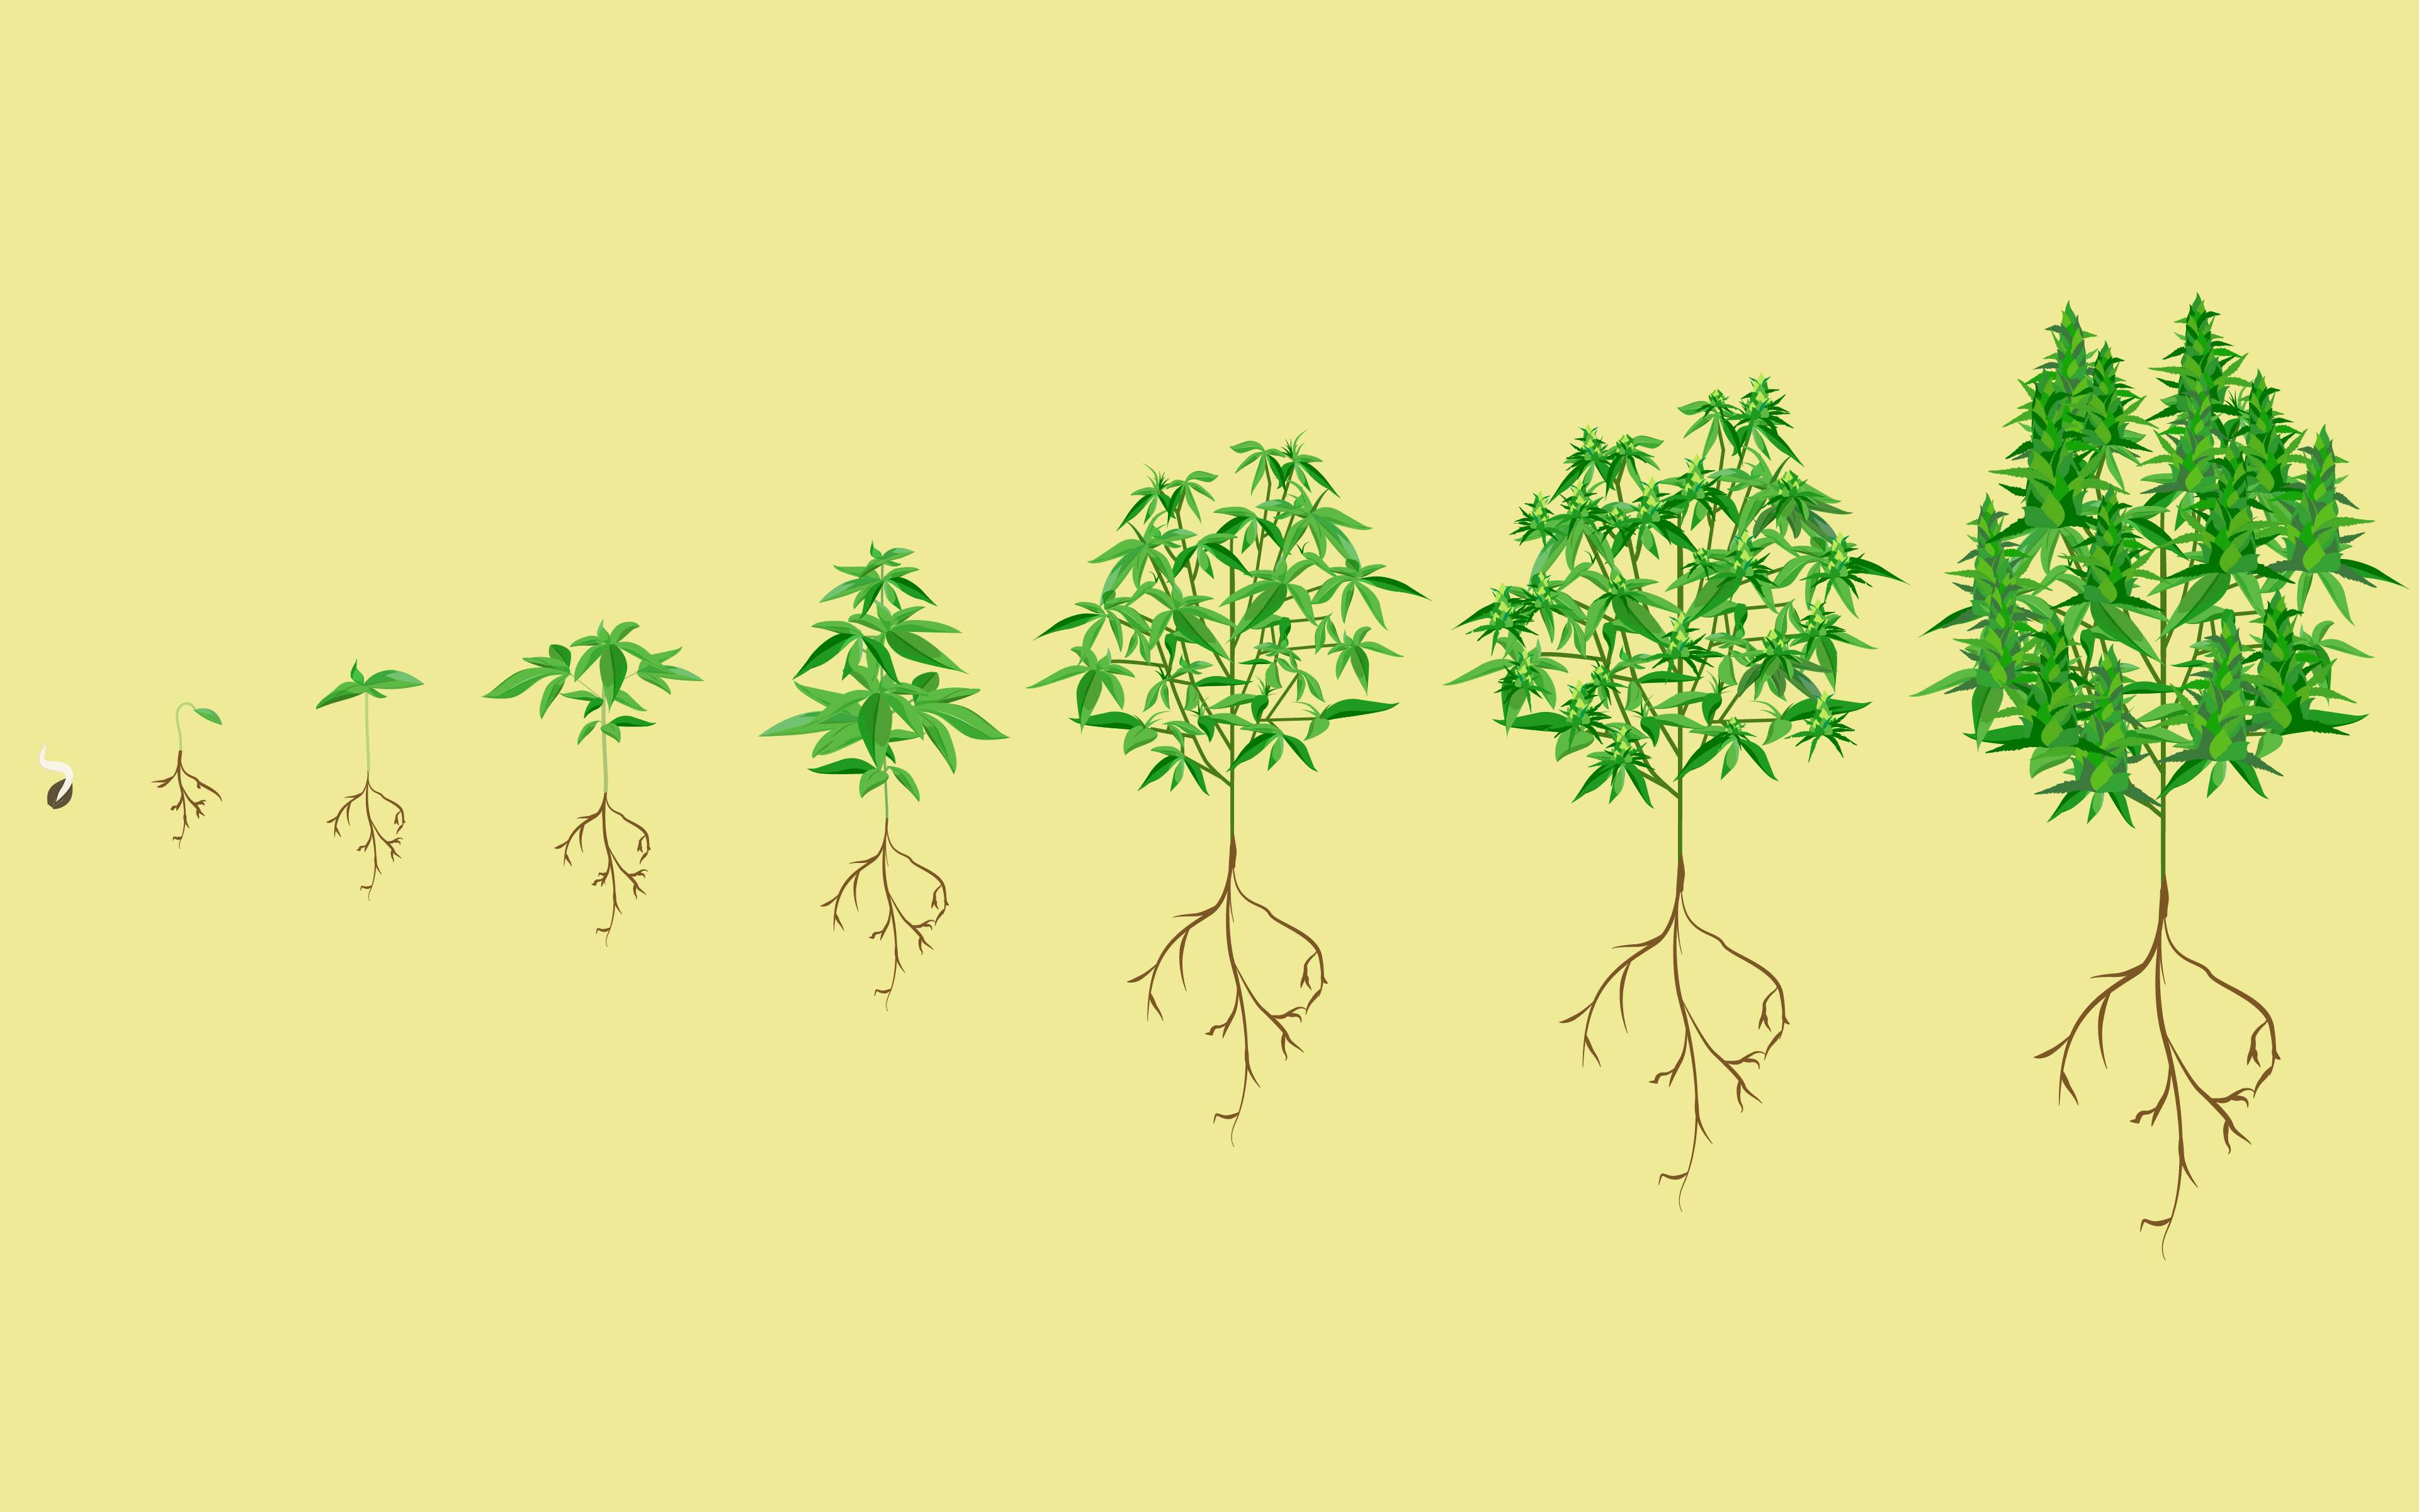 Stages of the cannabis plant growth cycle in pictures | Leafly